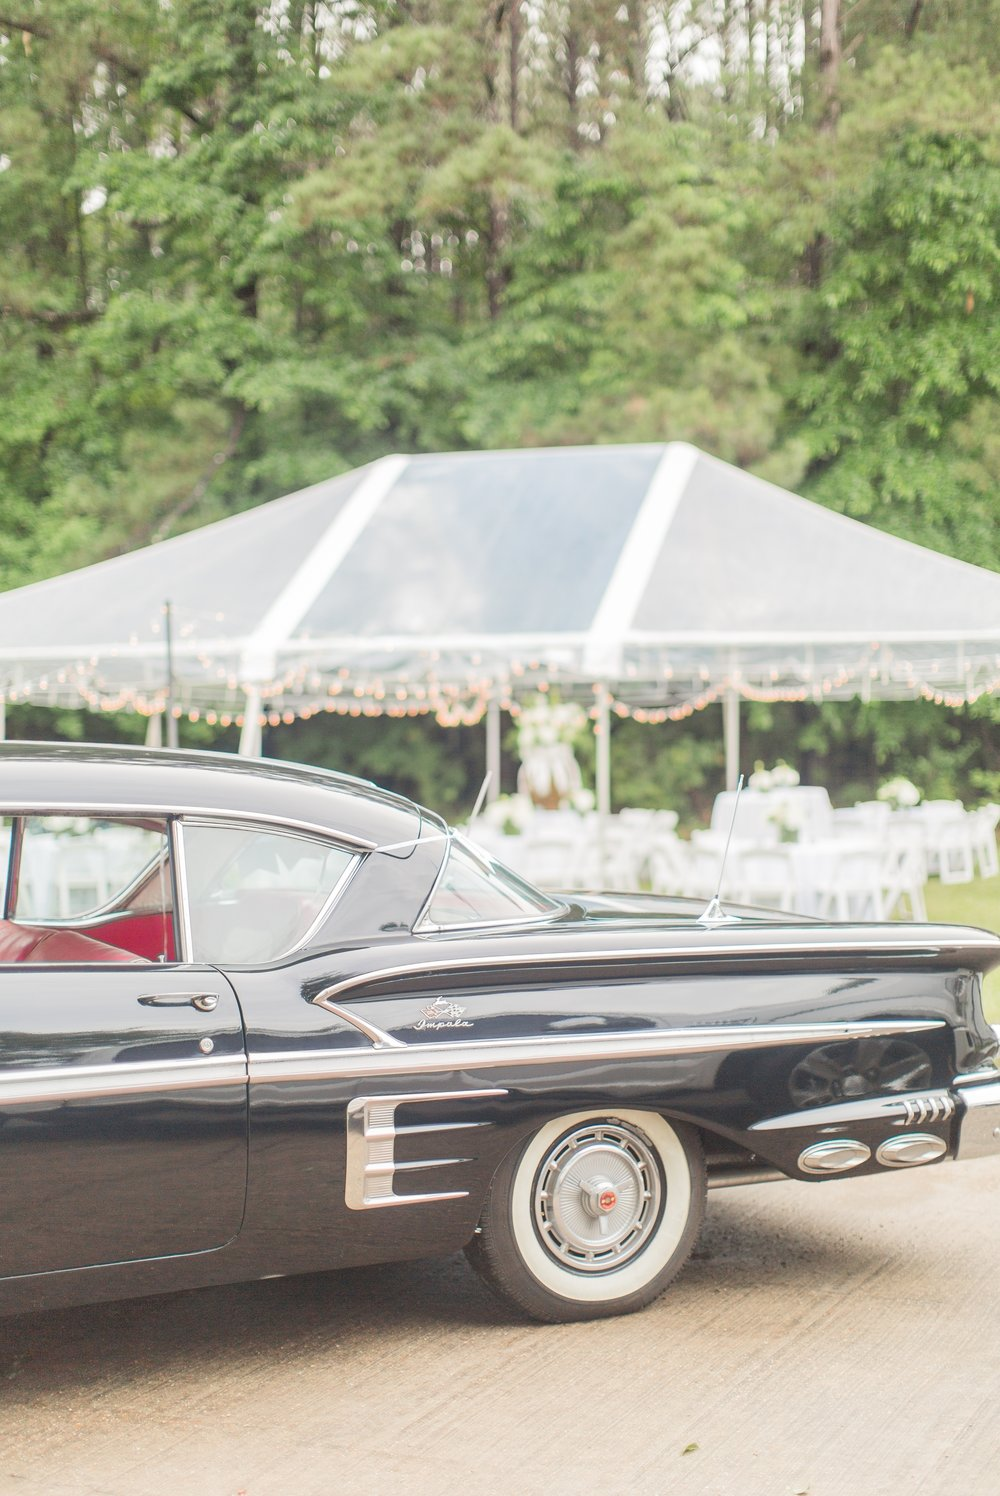 mississippi-church-wedding 55.jpg